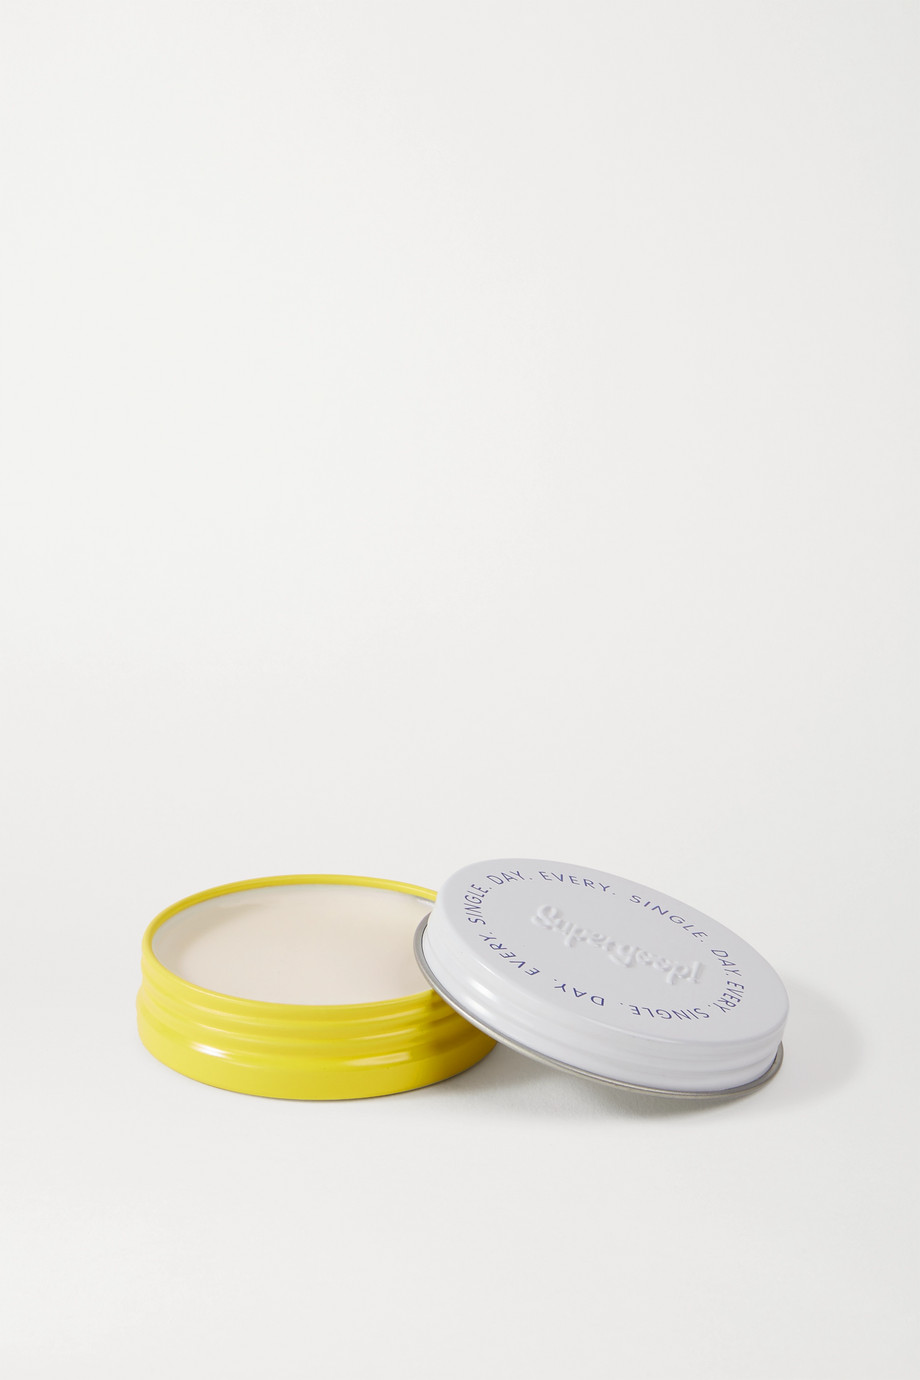 Supergoop! Cloud 9 100% Mineral Sun Balm SPF 40, 30ml